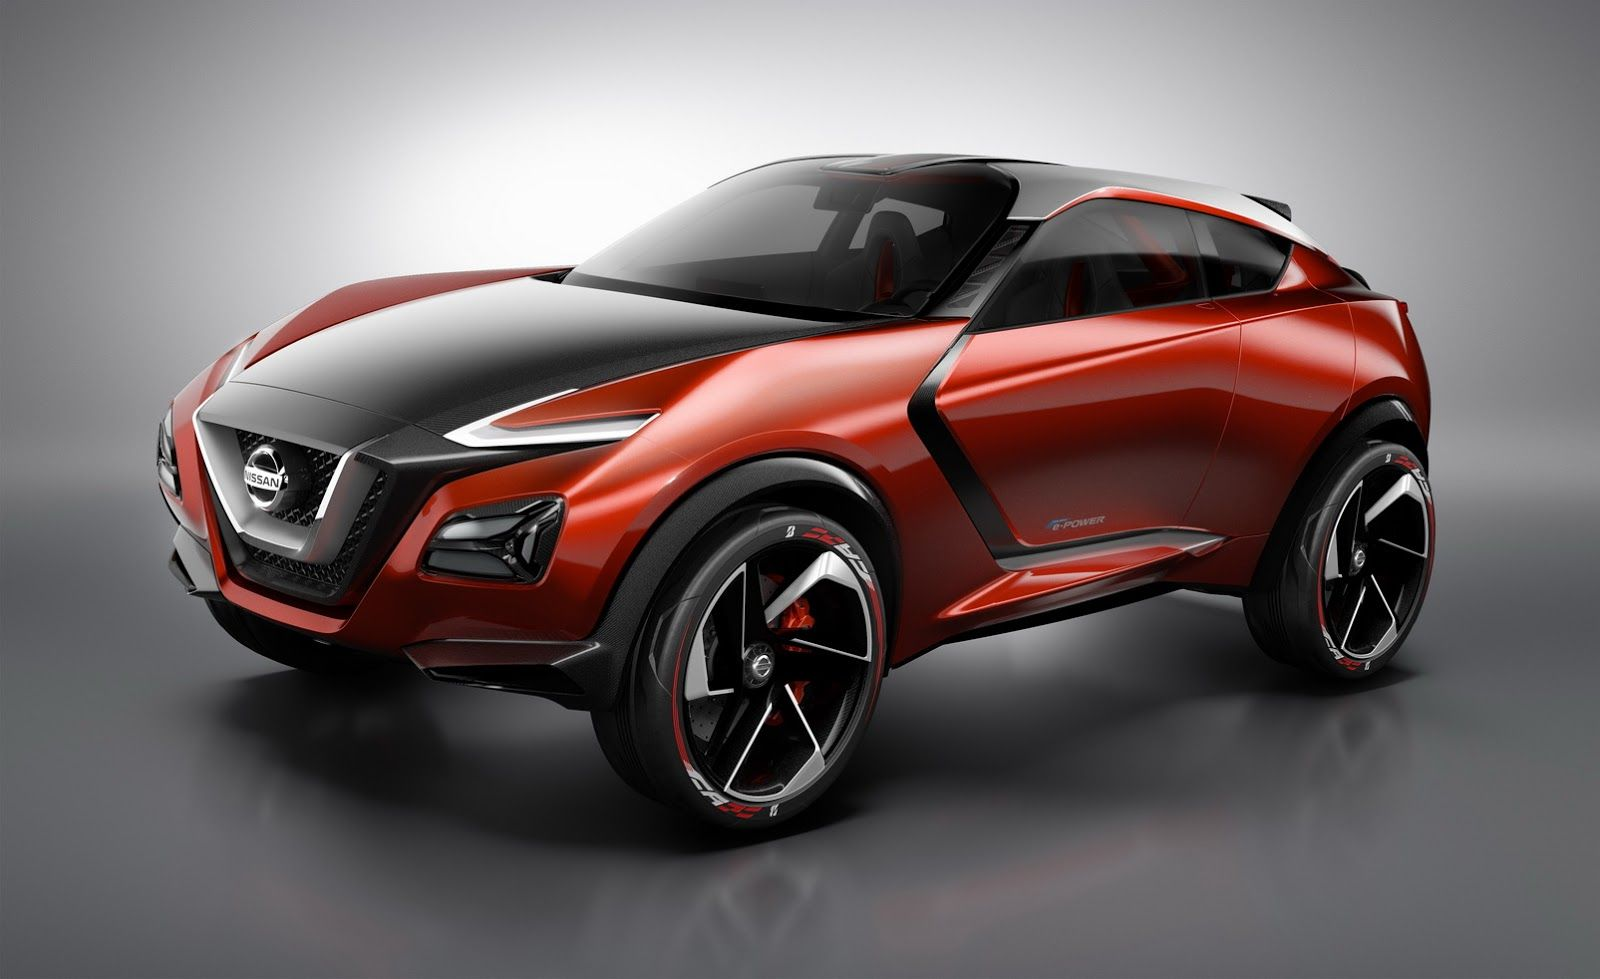 Nissan S Gripz Concept Is A Z Branded Sports Crossover 50 Pics Video Carscoops Nissan Juke Sporty Suv Concept Cars